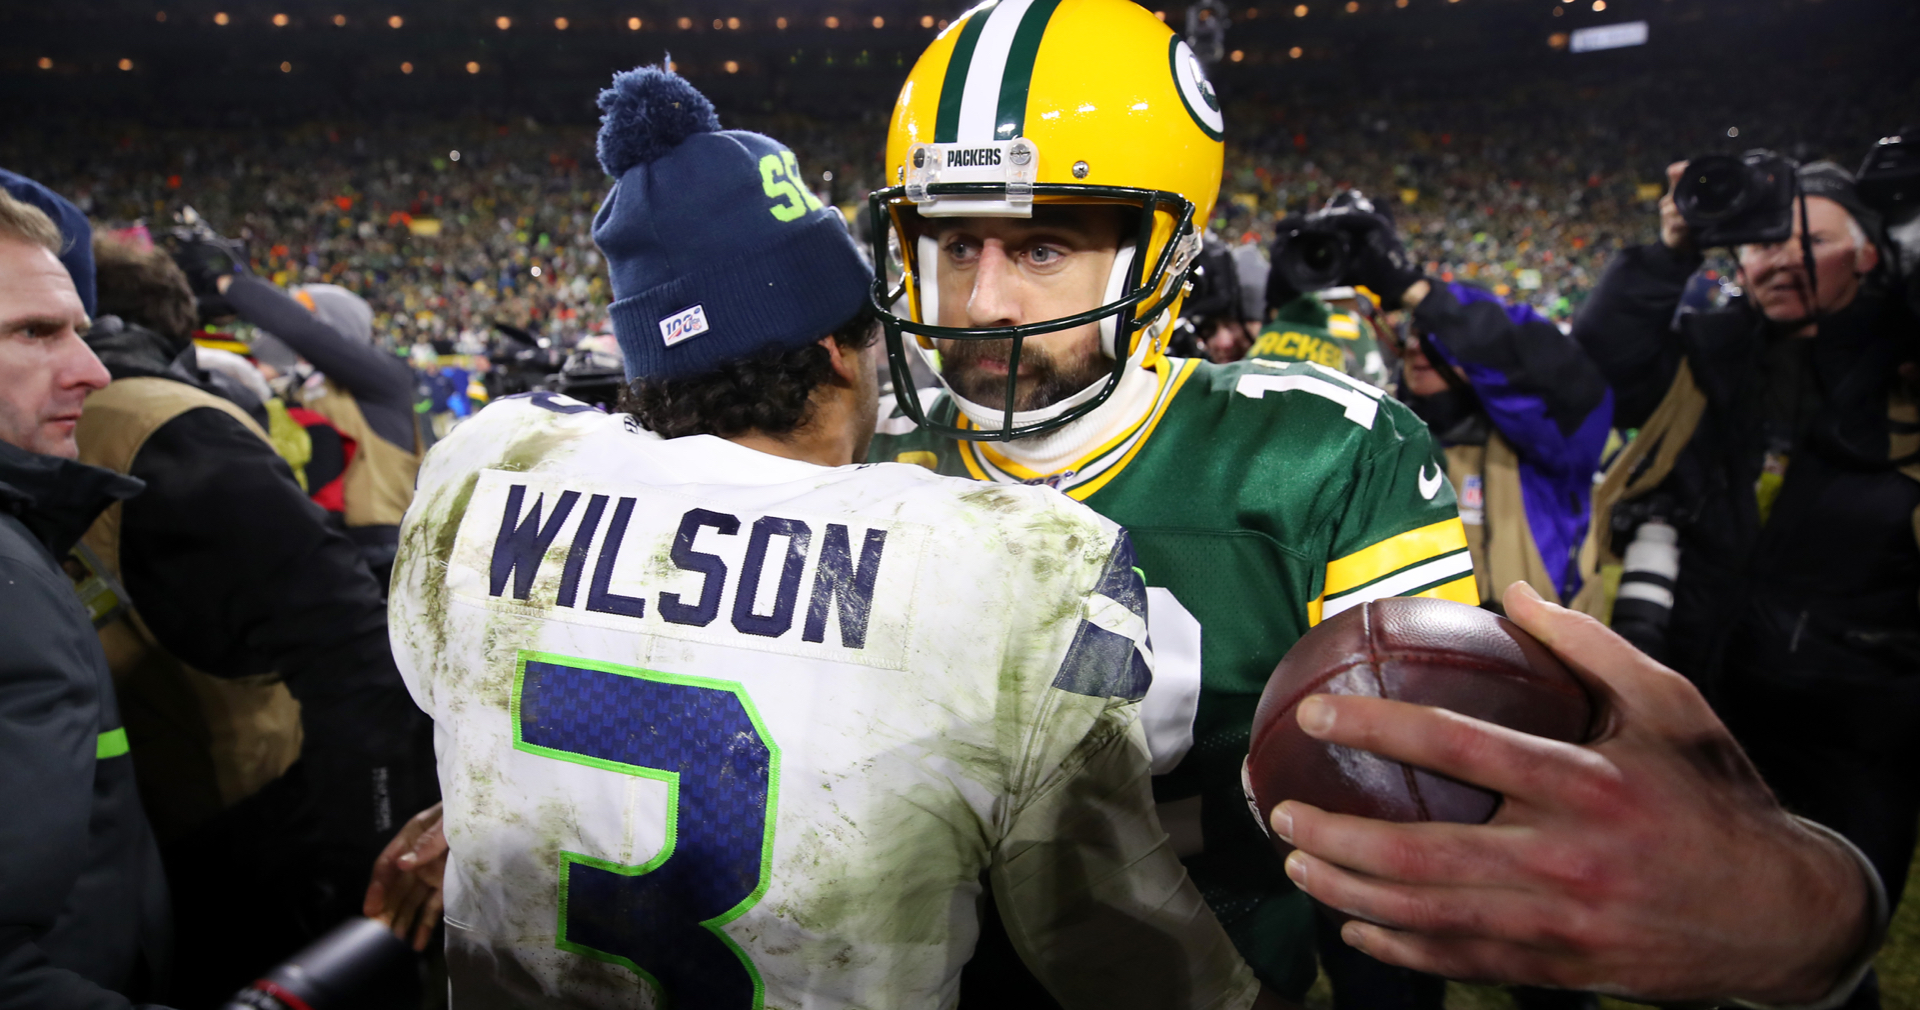 Aaron Rodgers, Russell Wilson oppose NFL CBA deal, but it might be a losing effort